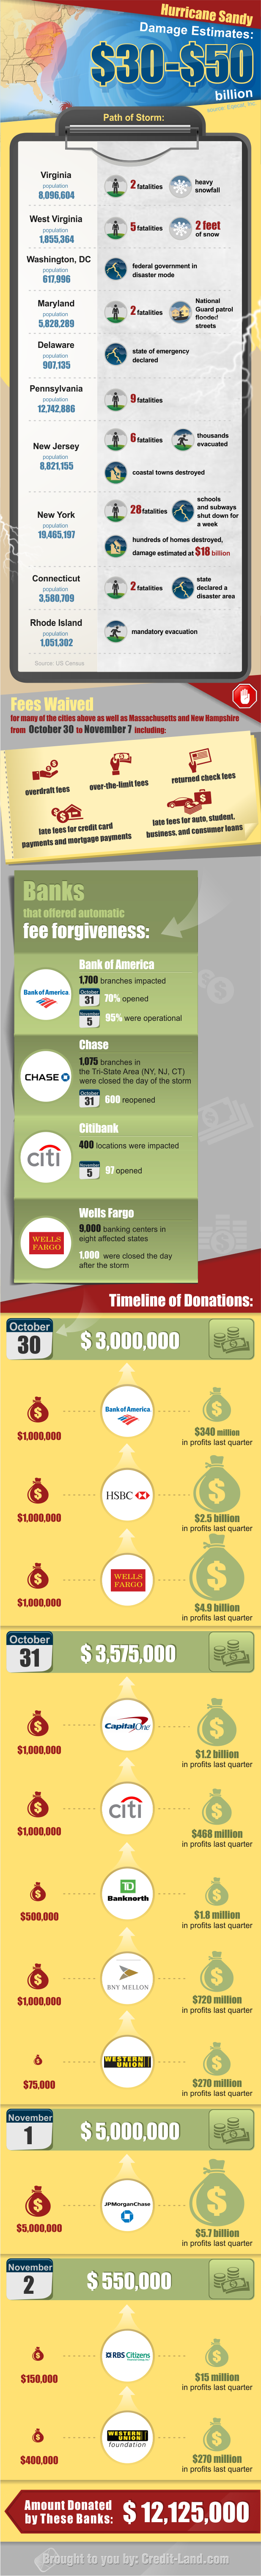 Infographic - Hurricane Sandy's Path: Damages and Donations